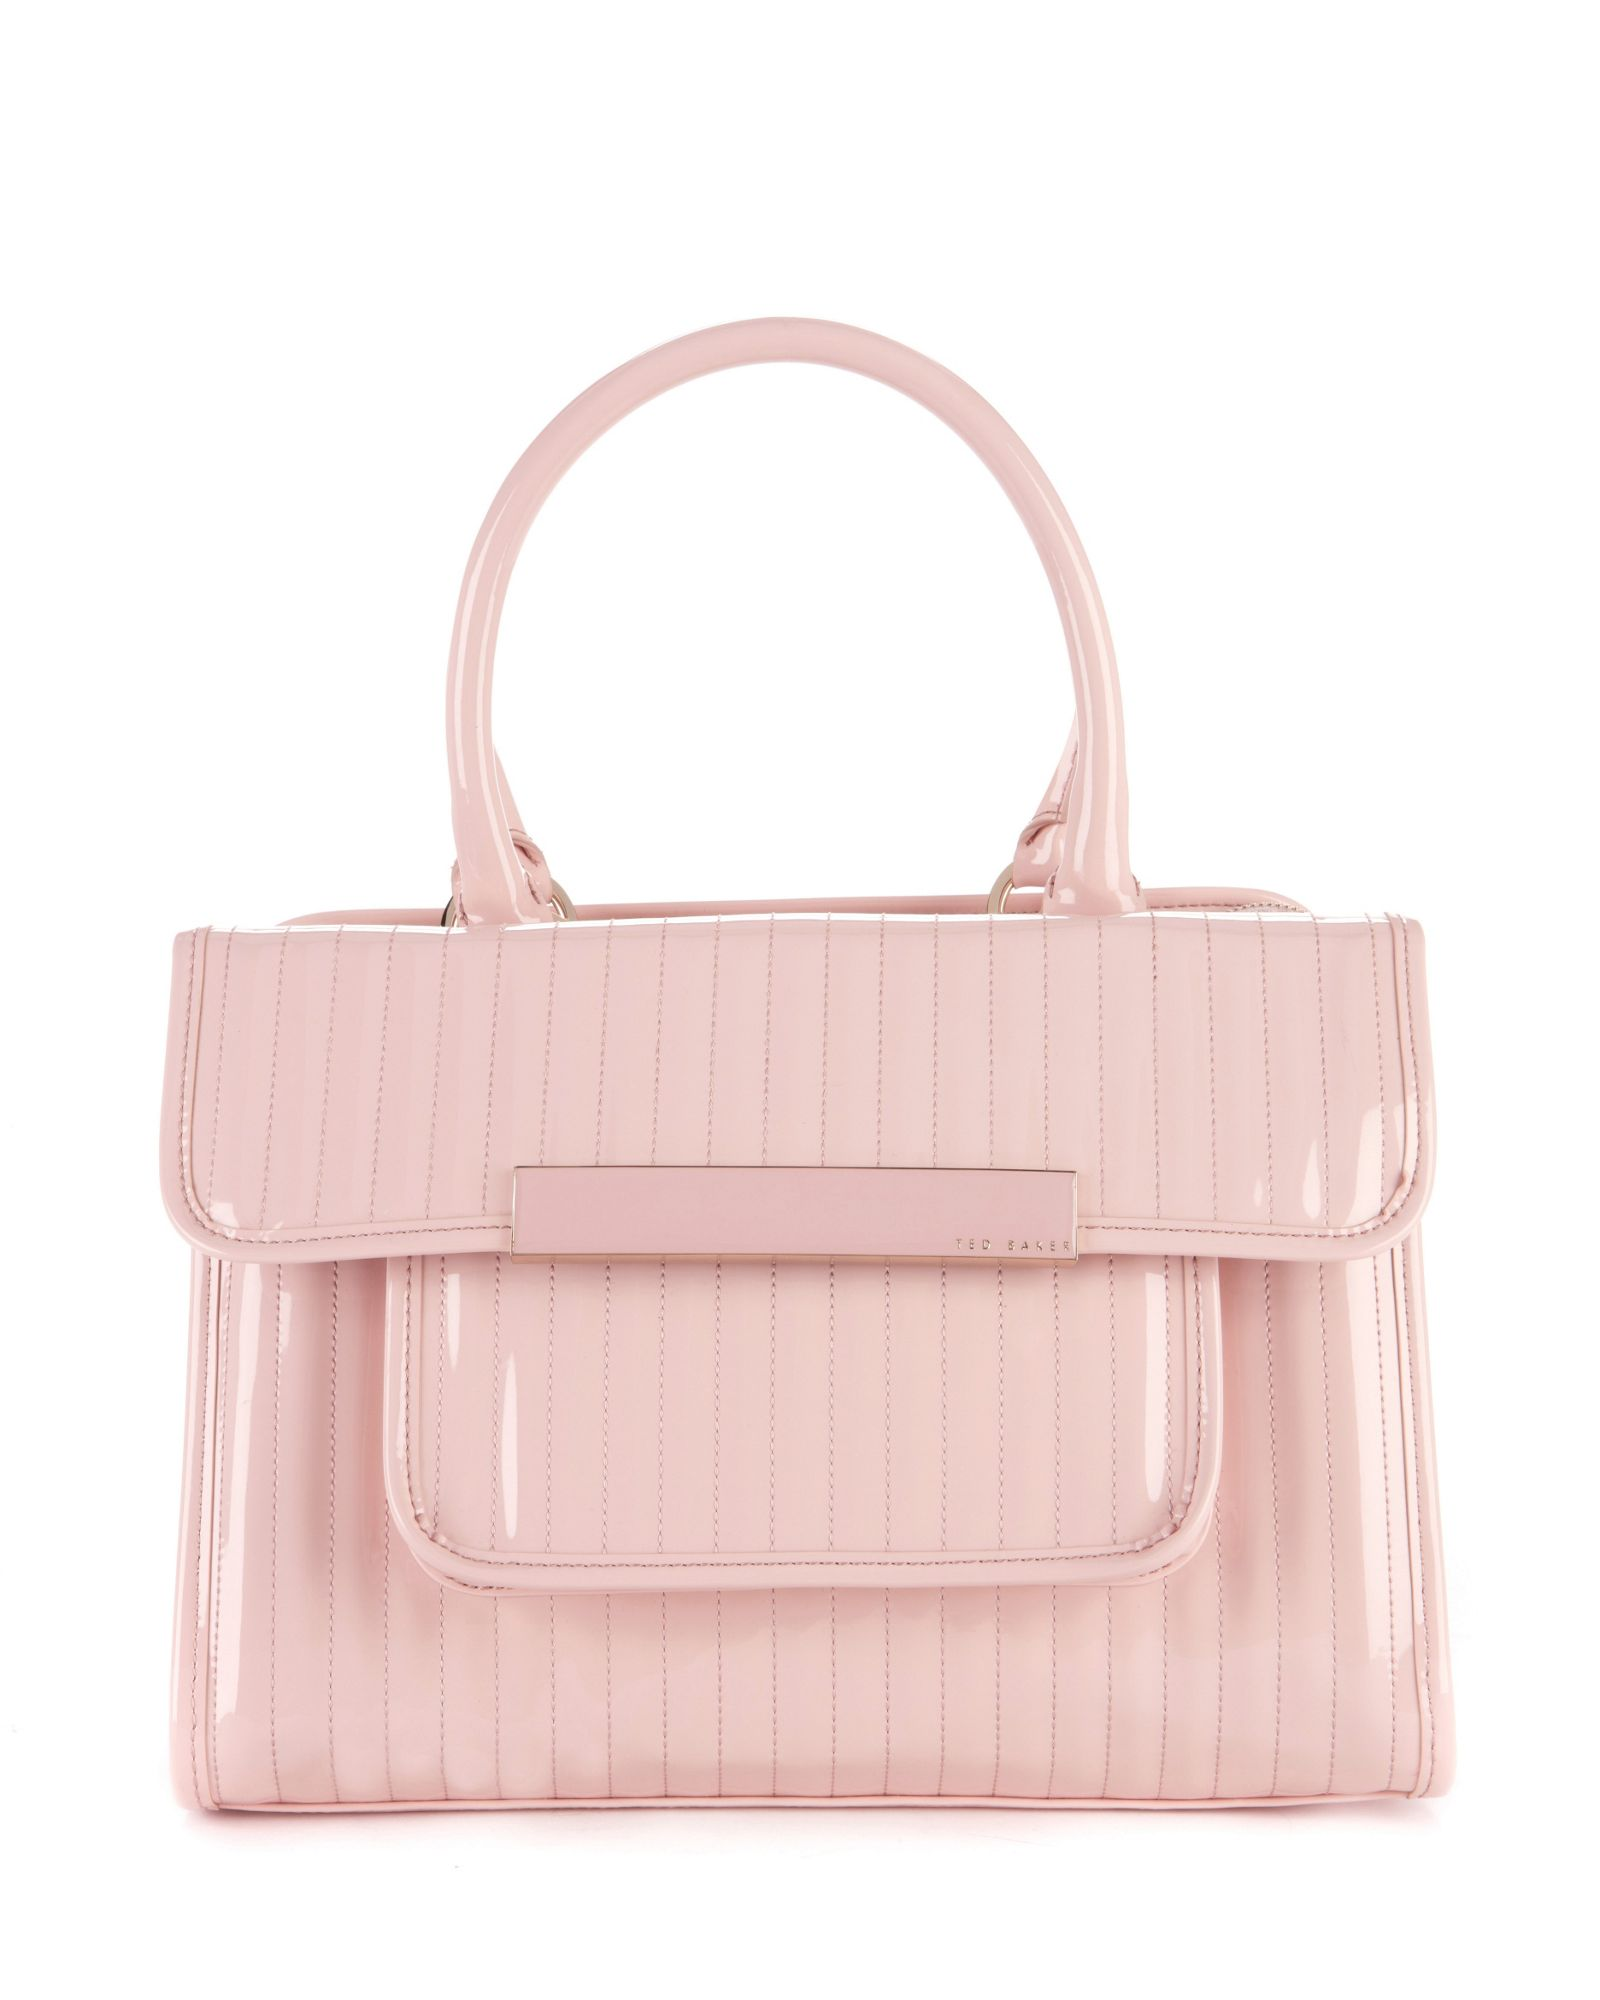 Ted Baker Mardun Patent Quilted Tote Bag In Pink Lyst